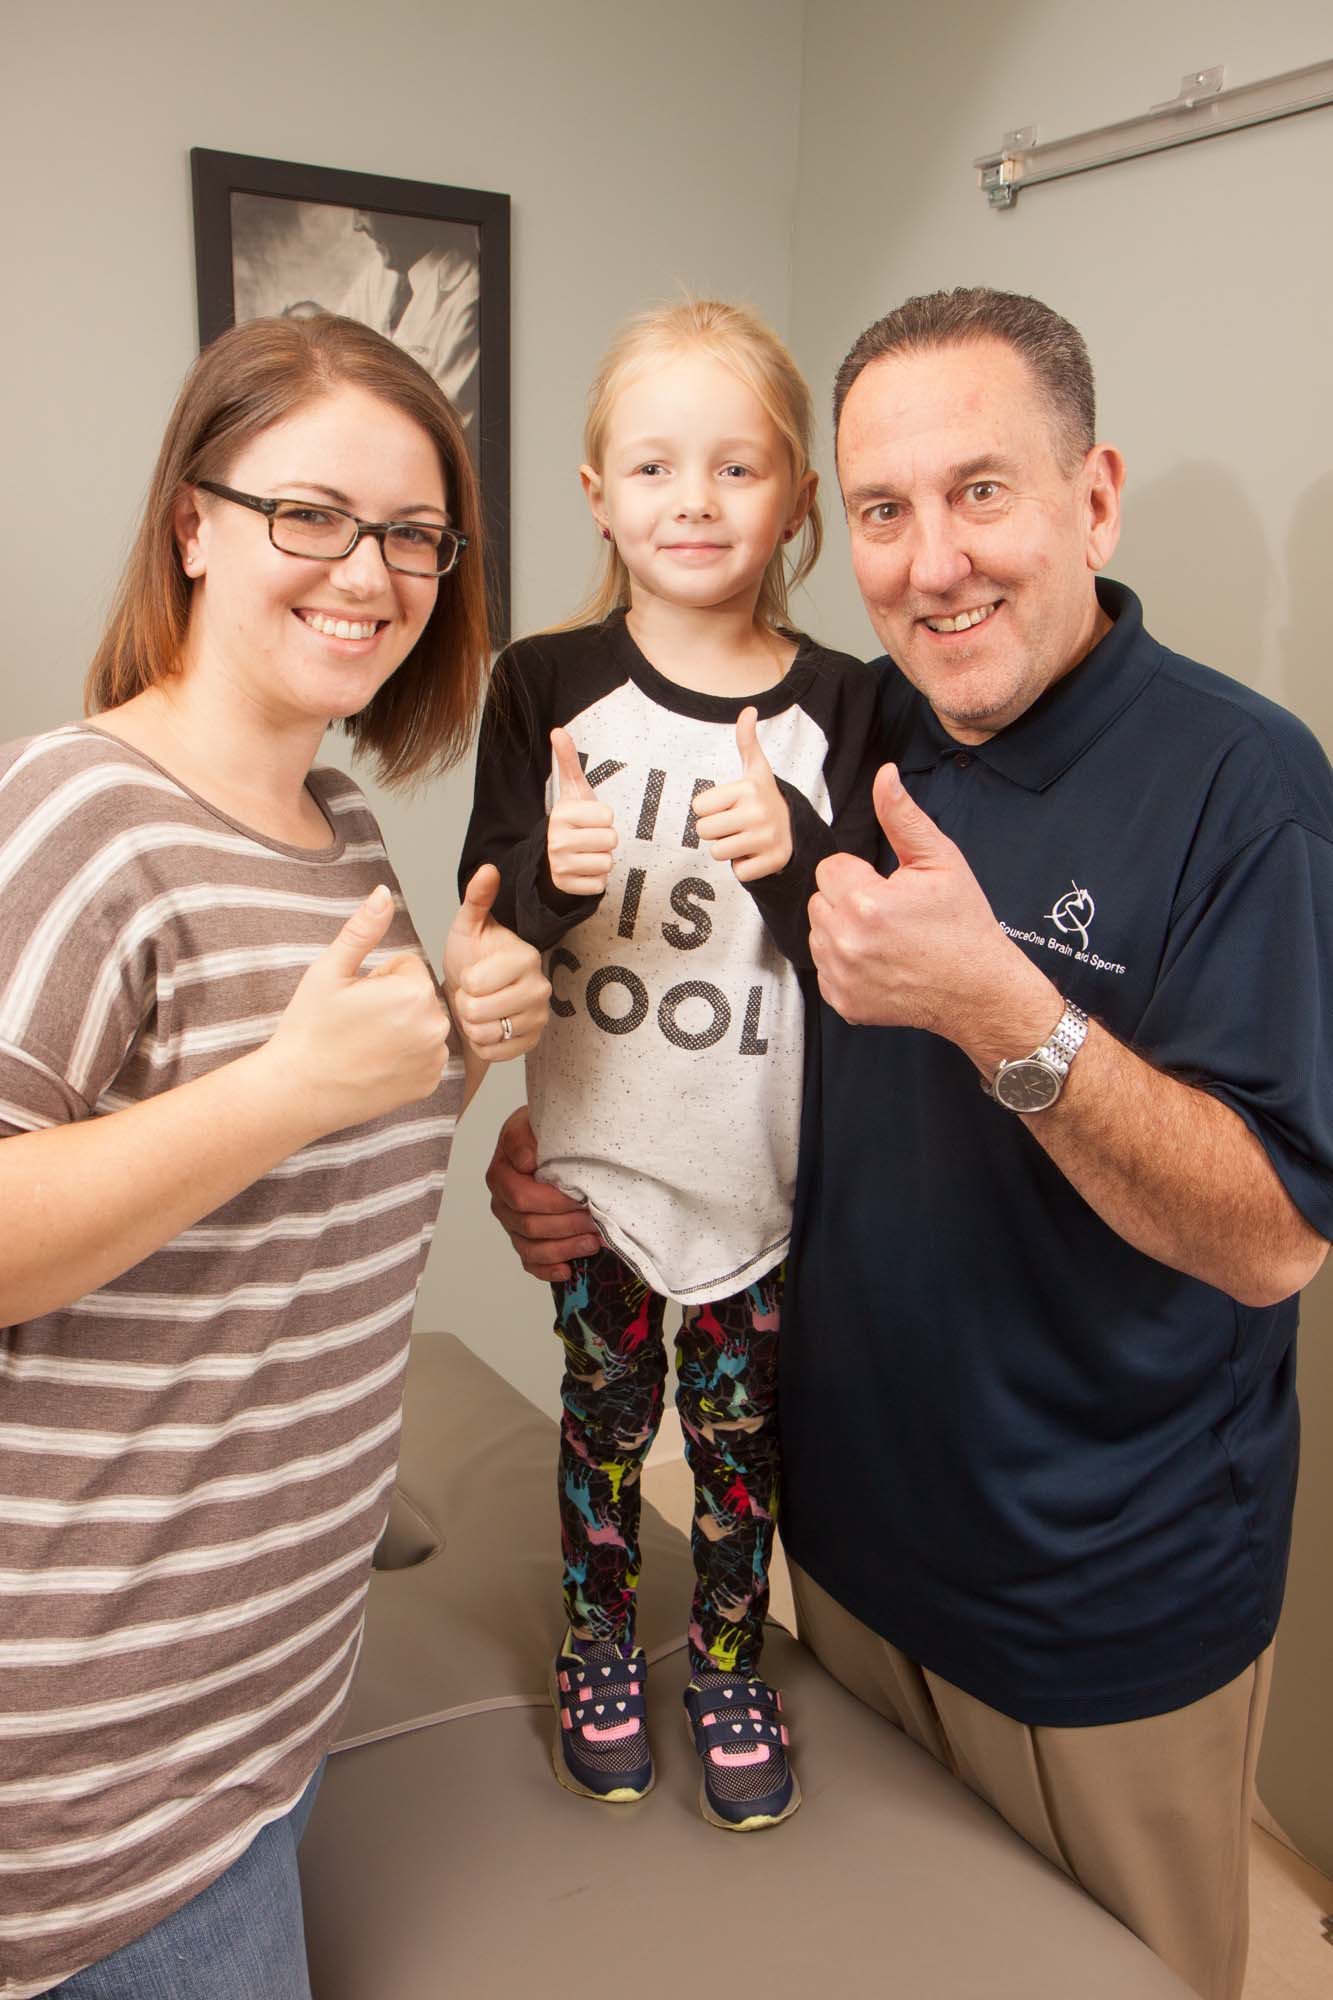 Dr. Bubanic with patients giving thumbs up